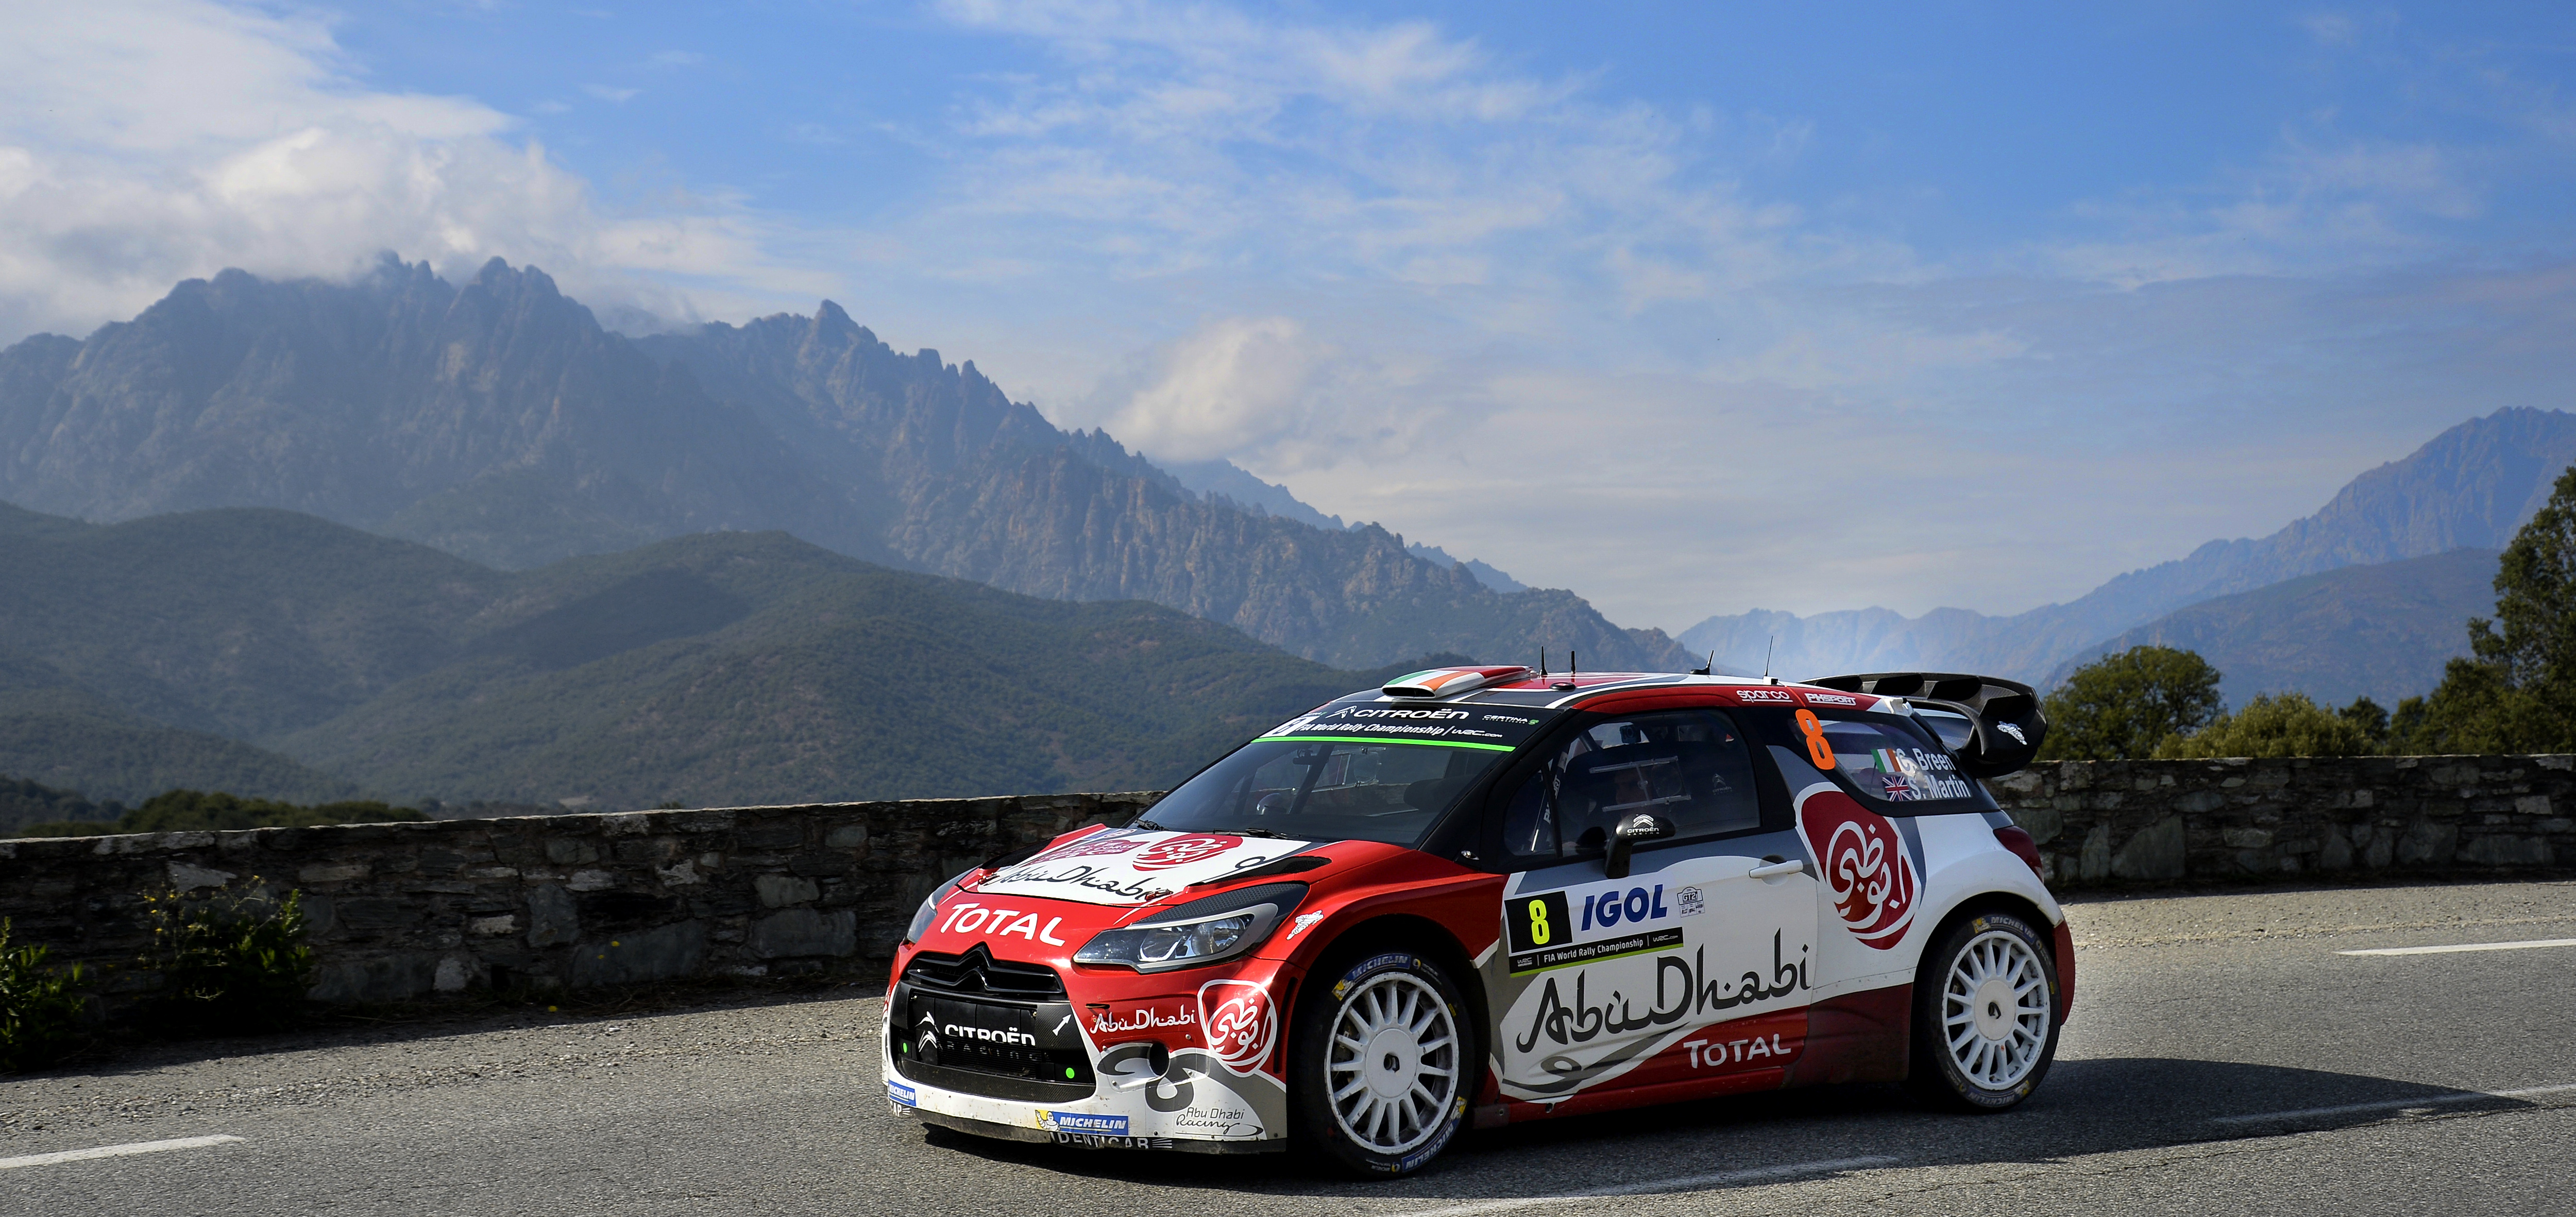 CRAIG BREEN REMAINS FIFTH AT TOUR DE CORSE